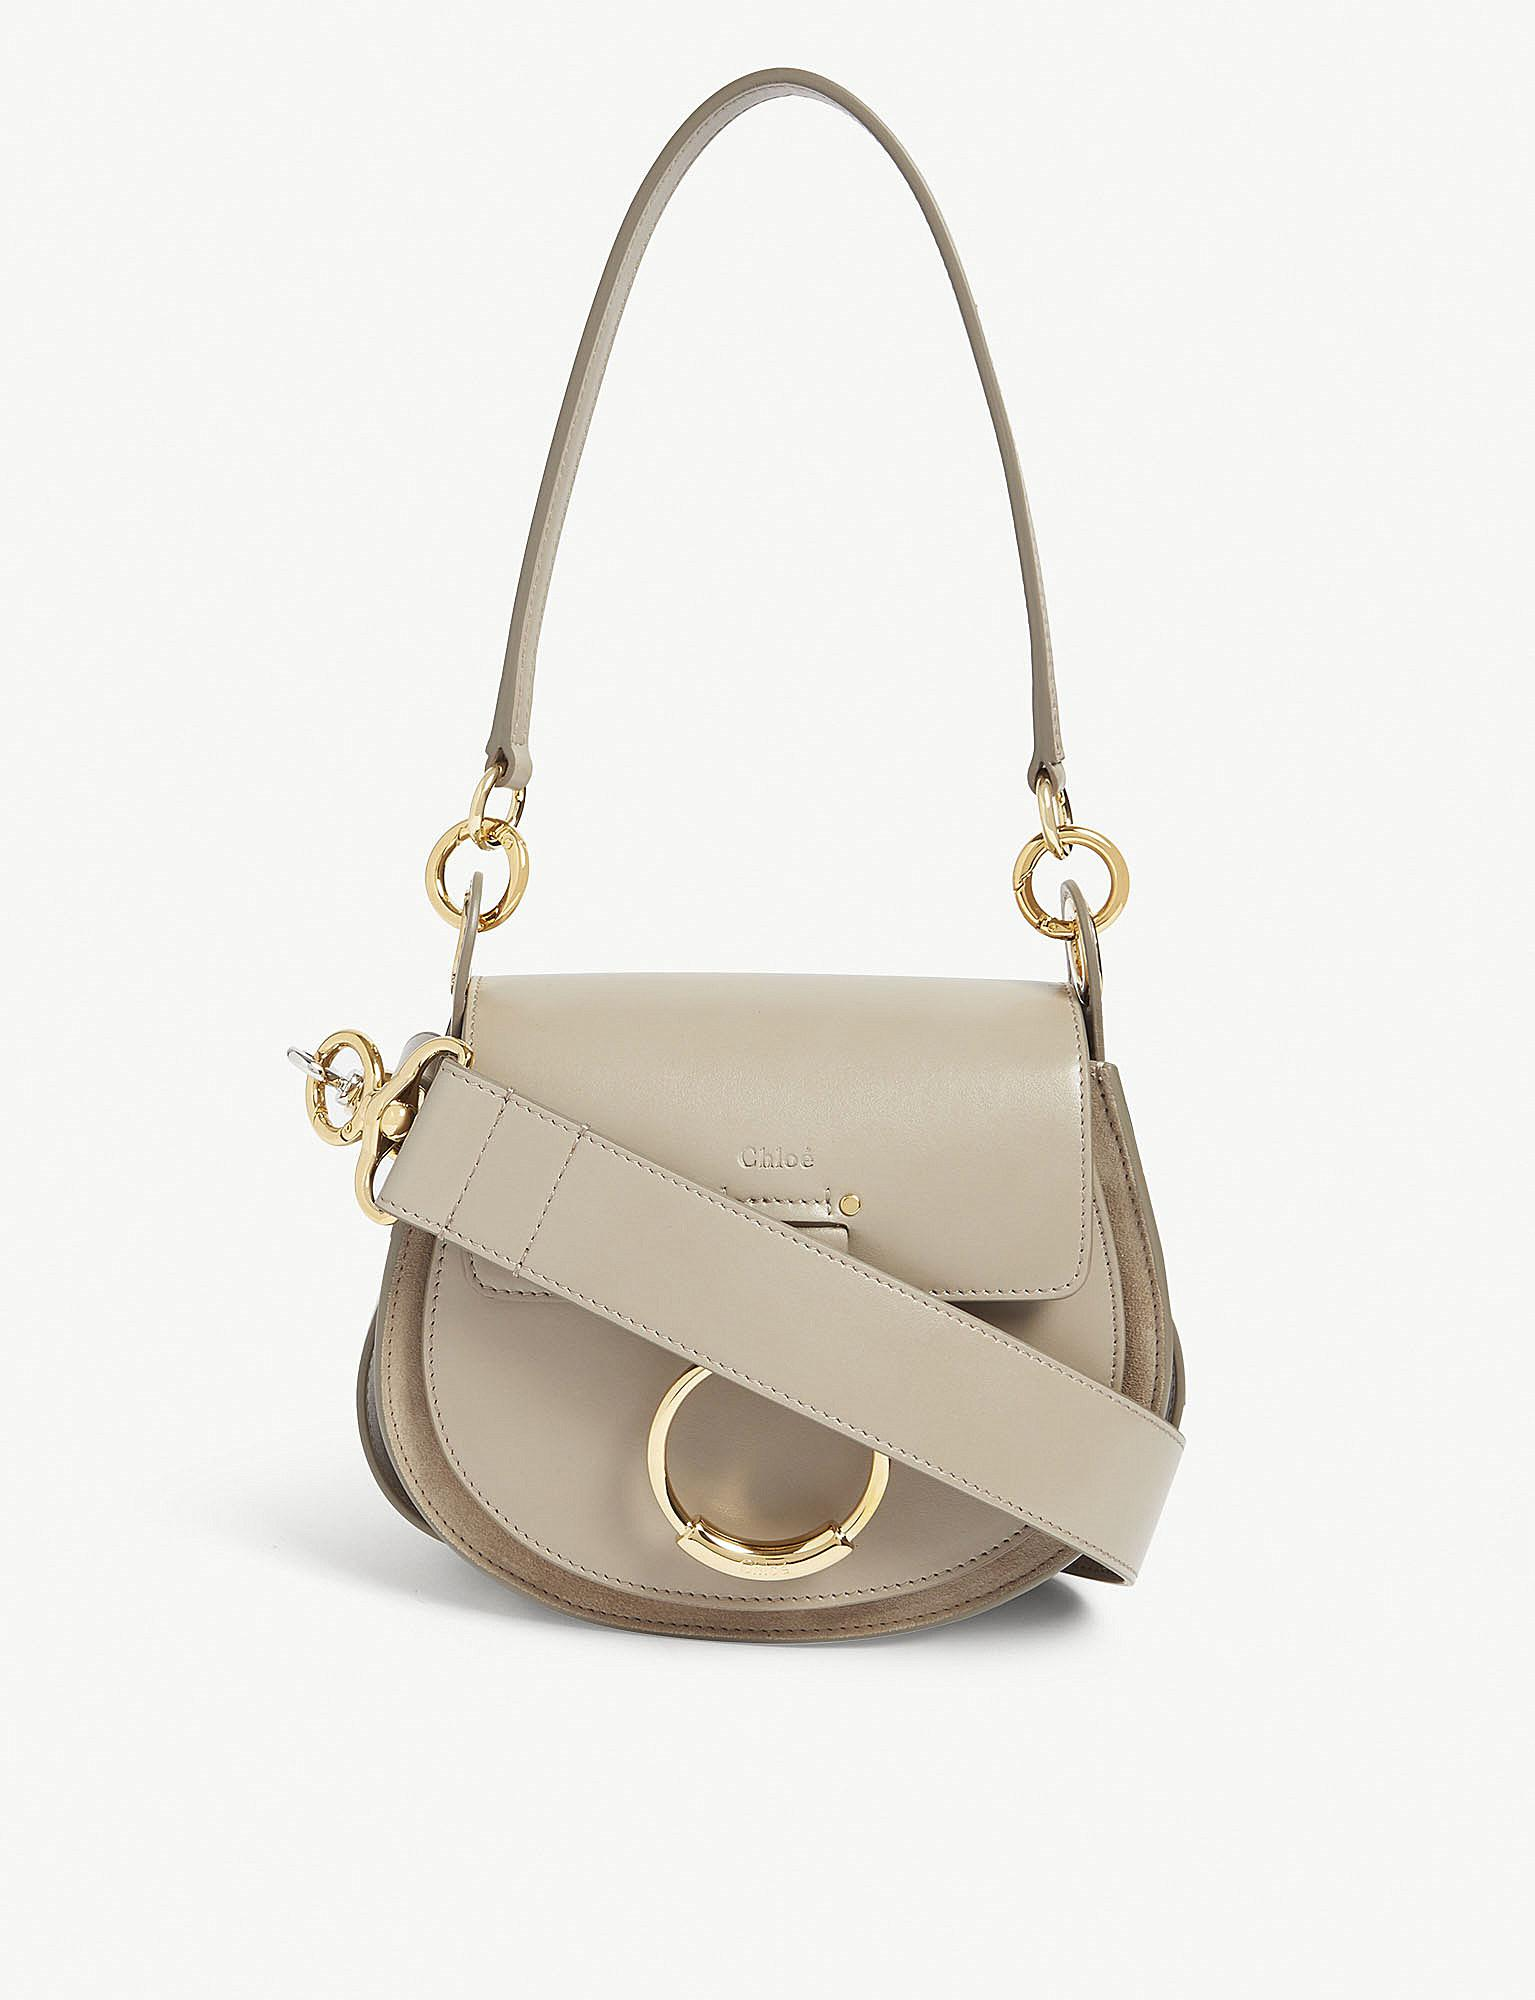 926c7d7afc85 Chloé Tess Leather And Suede Cross-body Bag in Gray - Lyst